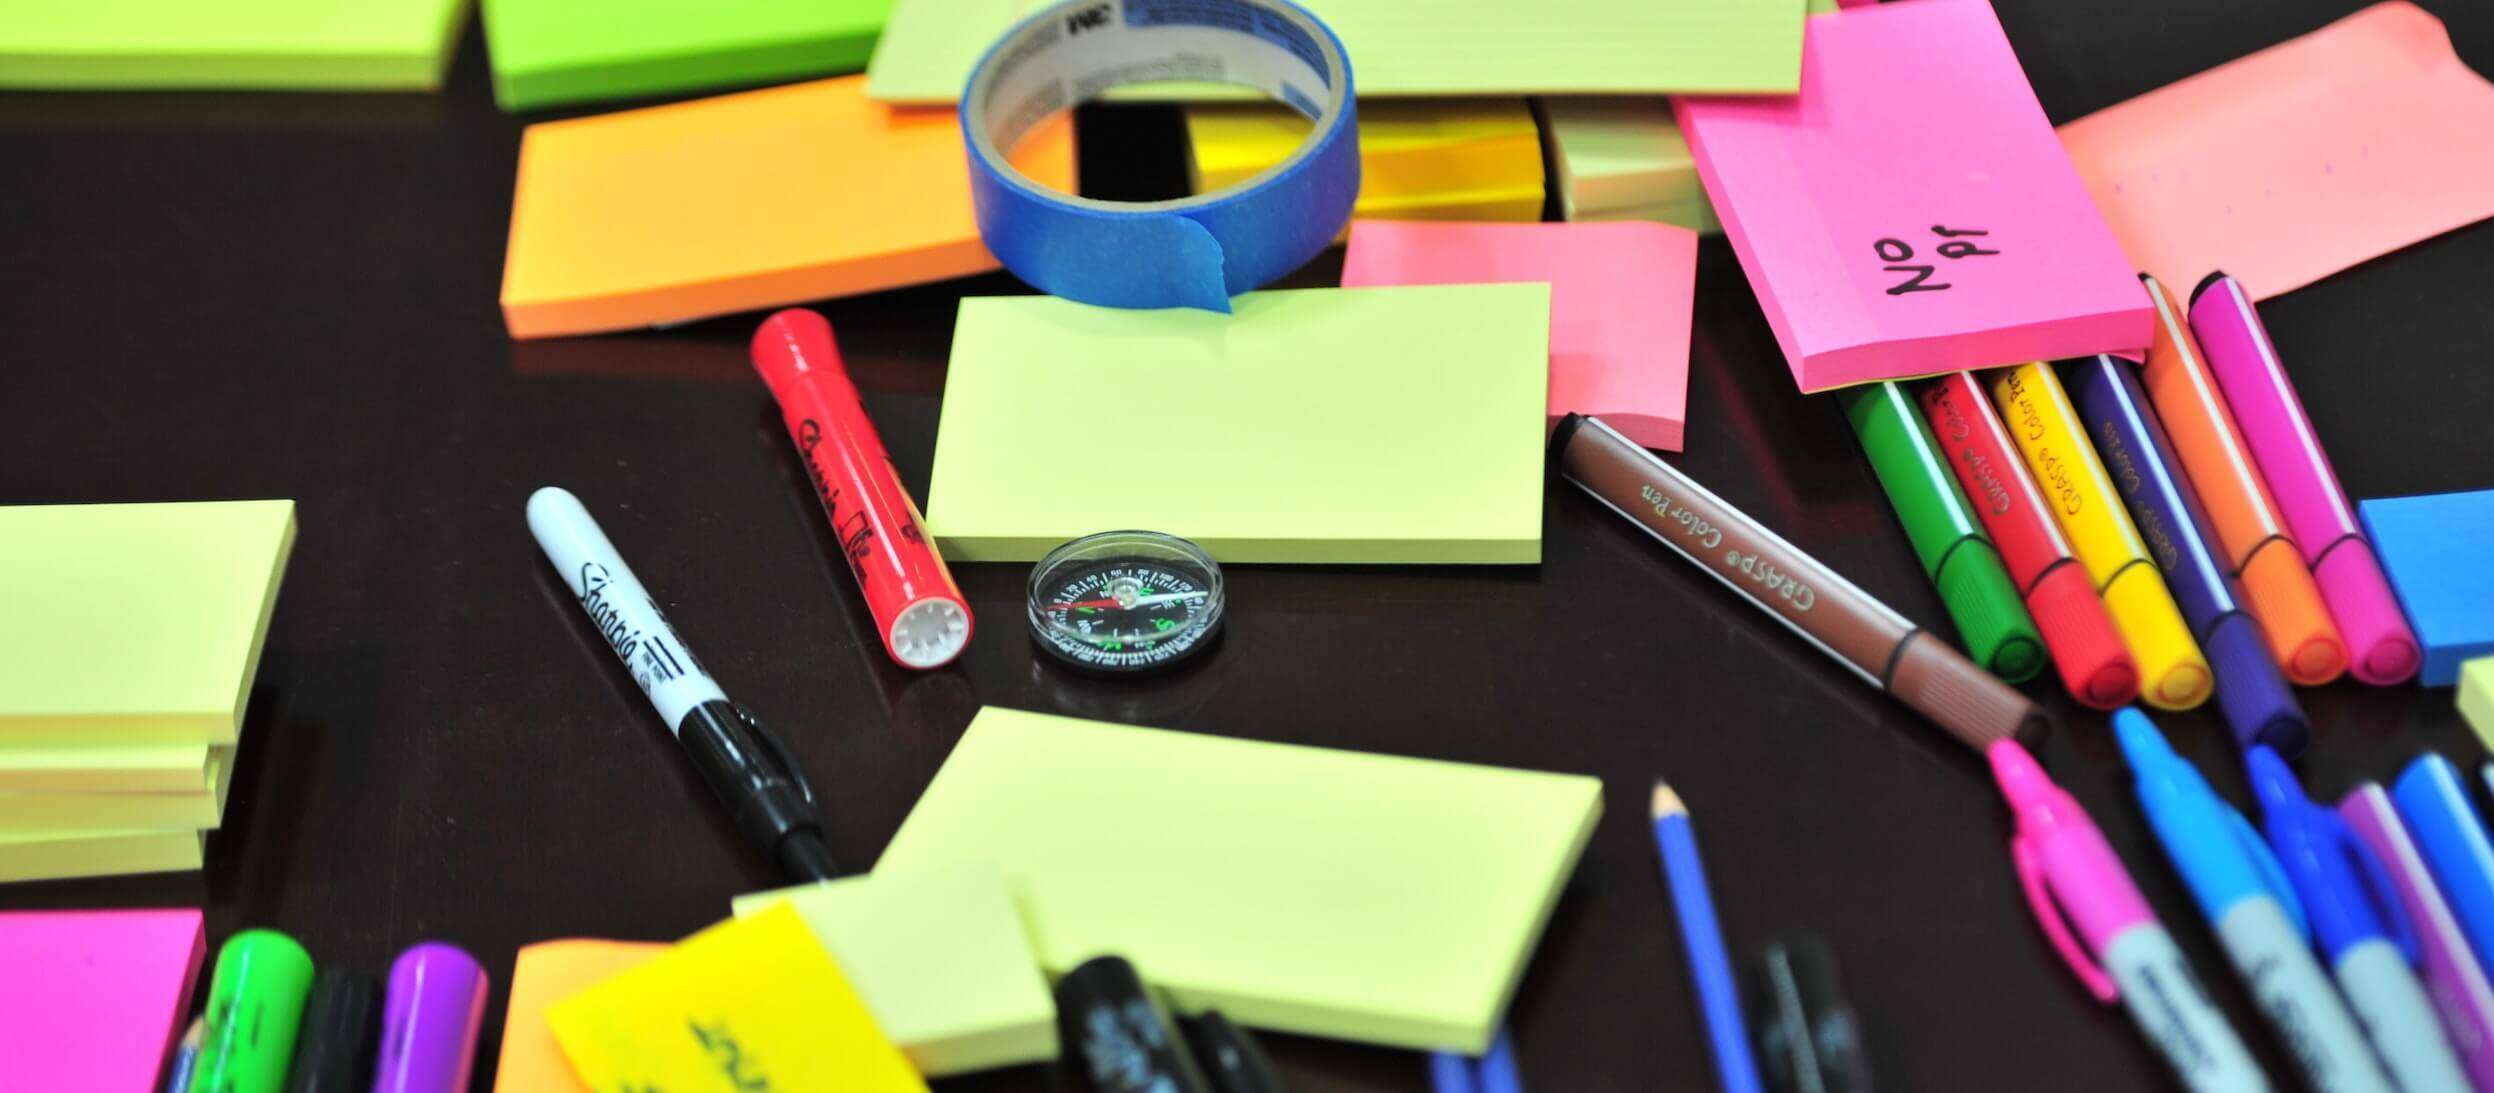 online sticky notes, project management, how to begin a startup, how to plan a project, digital post-it notes, post-it notes, online sticky notes, remote work tools, digital collaboration tool, free collaboration tools, free remote work tools, free remote learning tools,